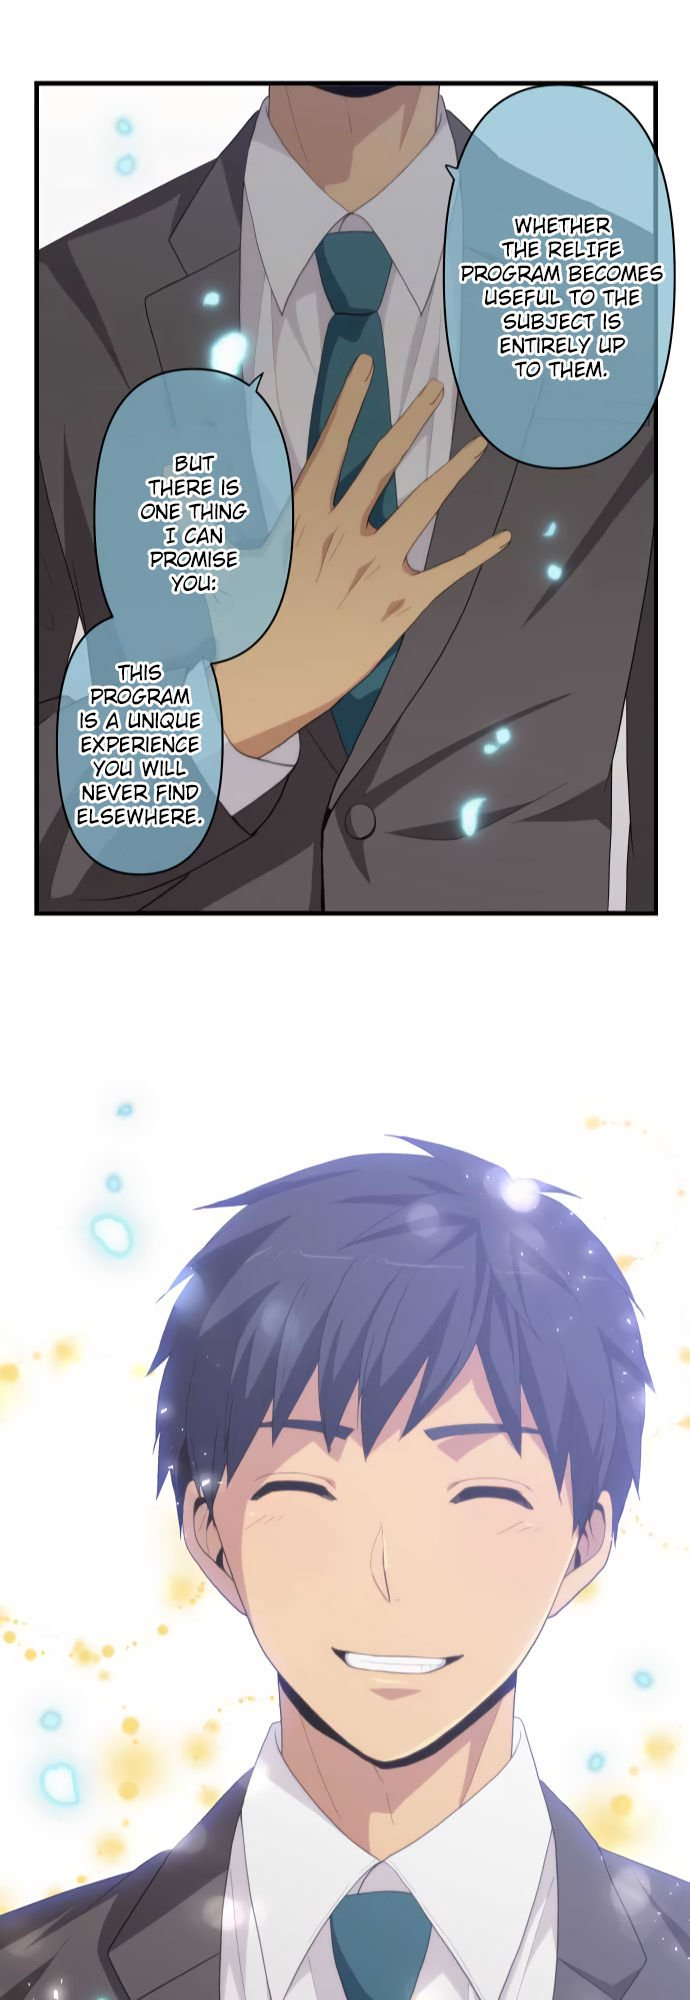 Relife 222 24